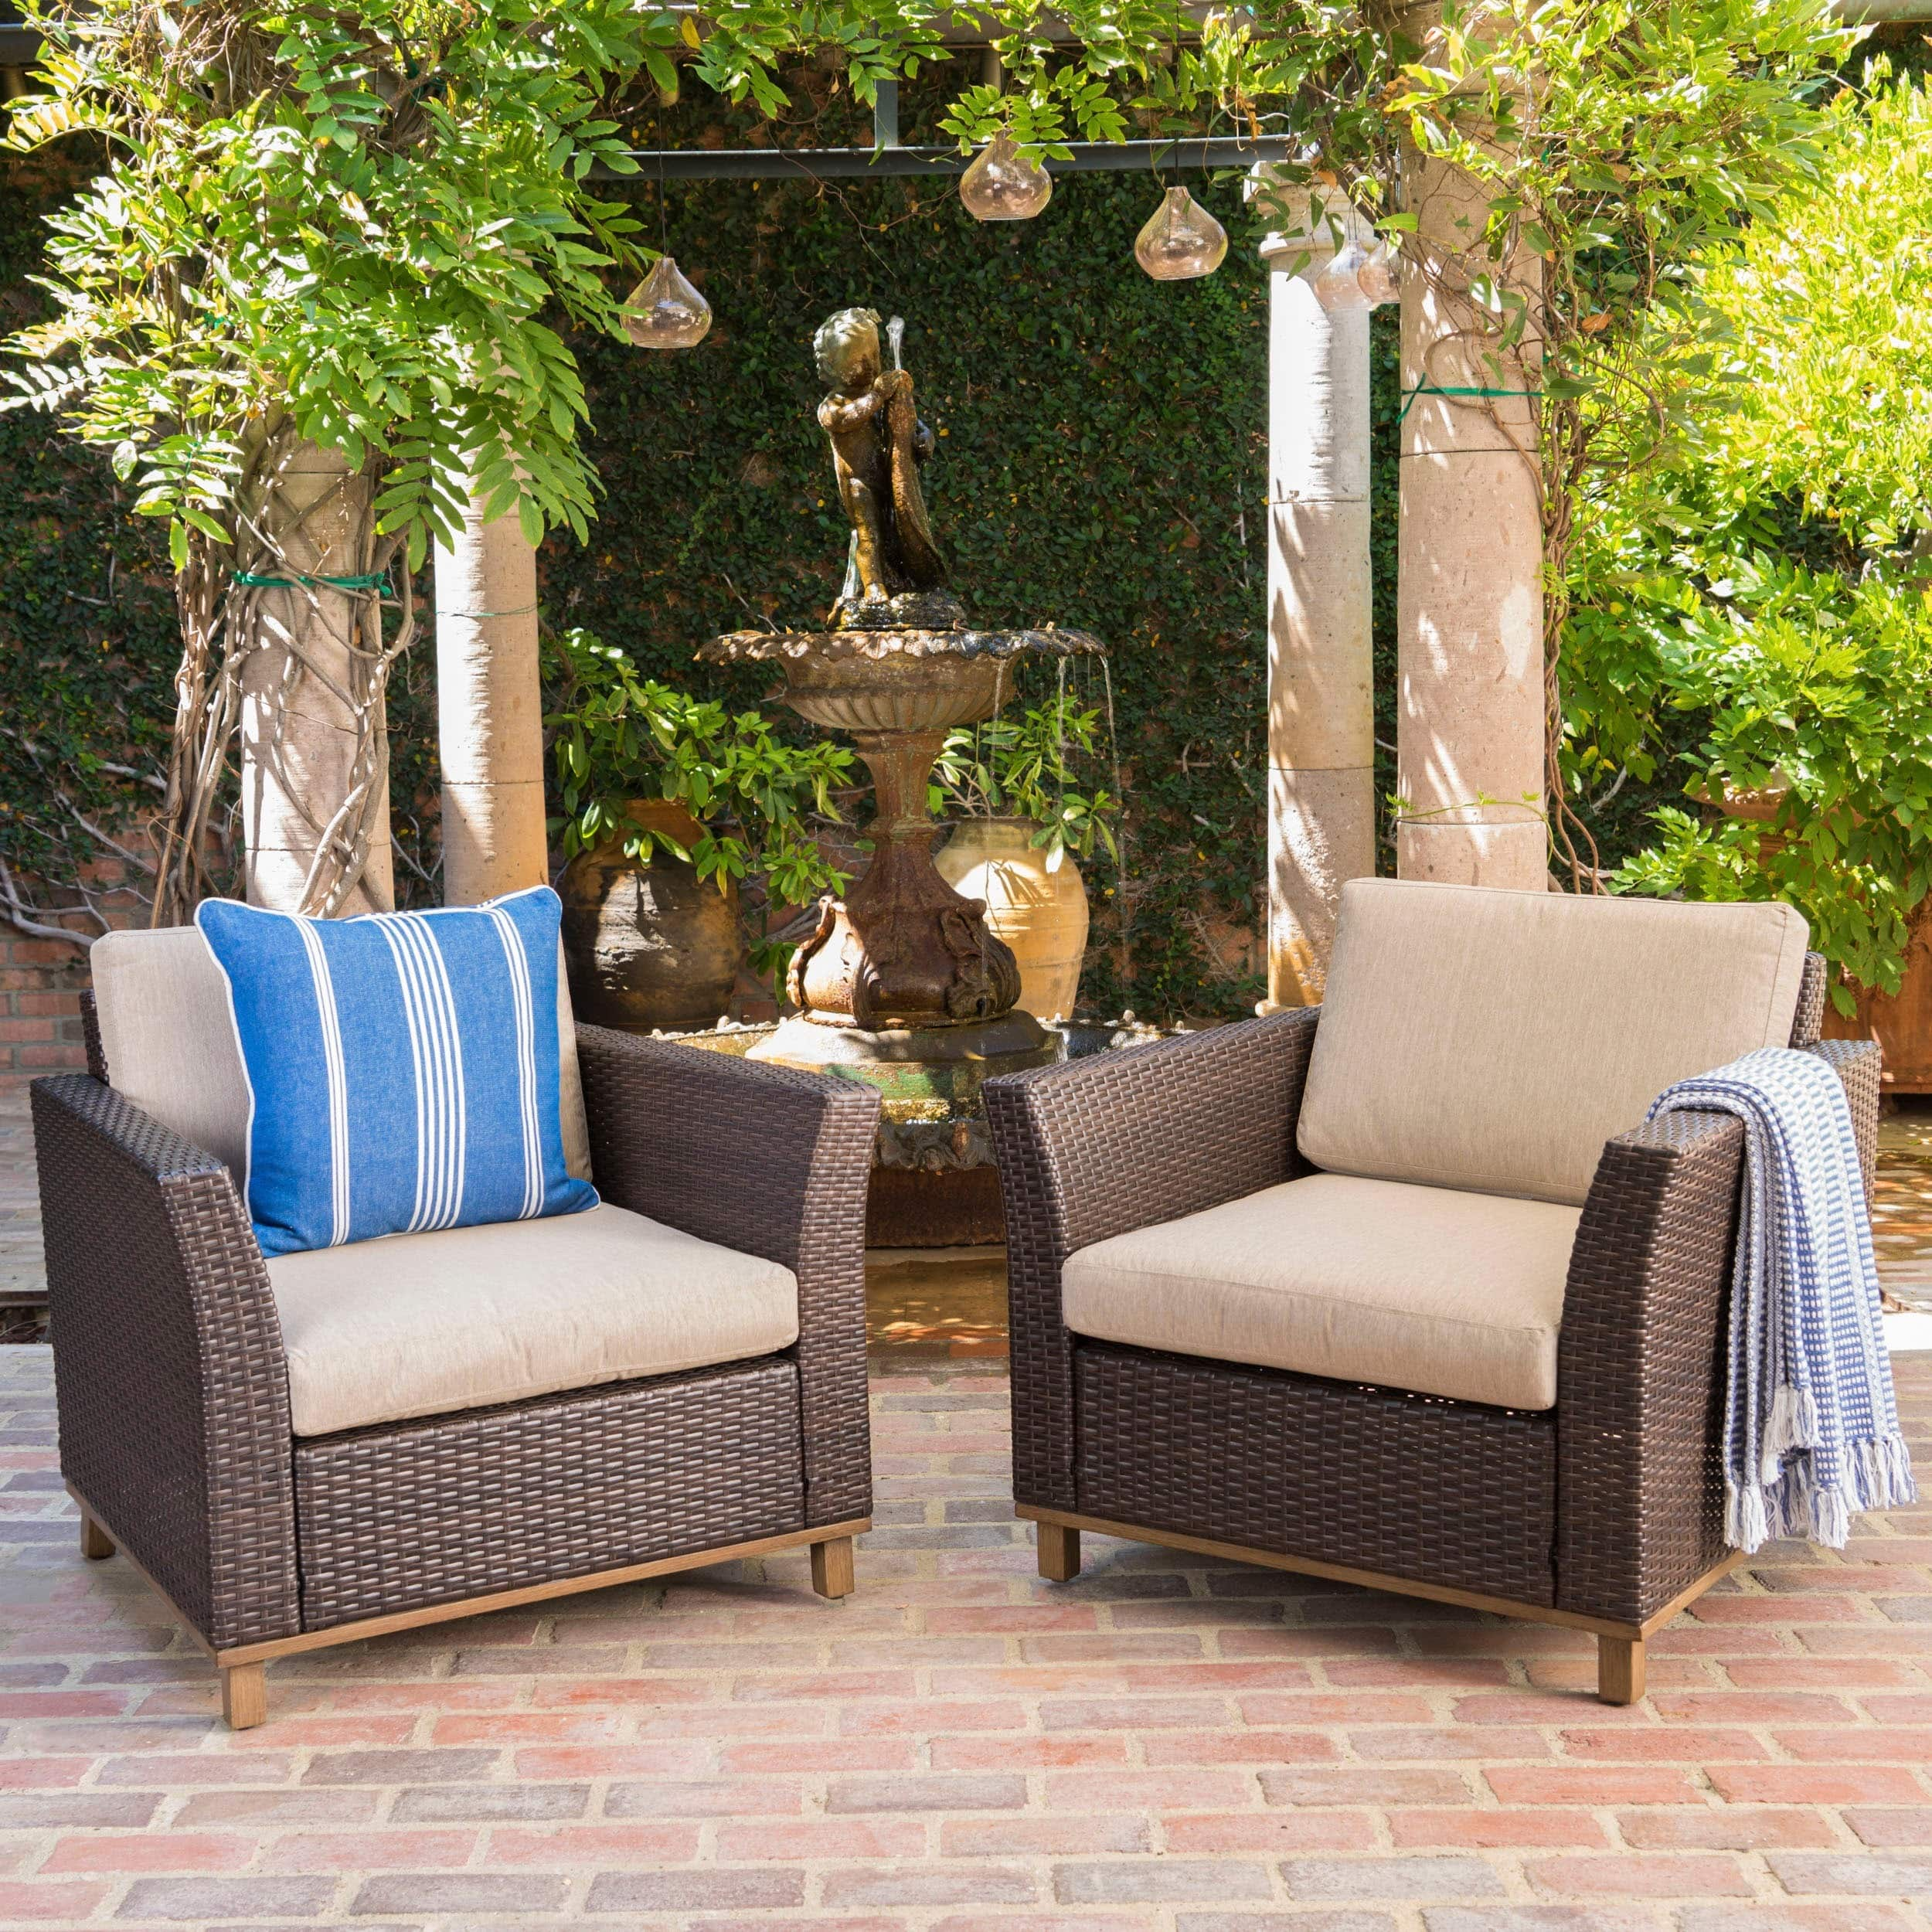 Christopher Knight Home Glenwood Outdoor Wicker Aluminum Club Chair with Cushion (Set of 2) by